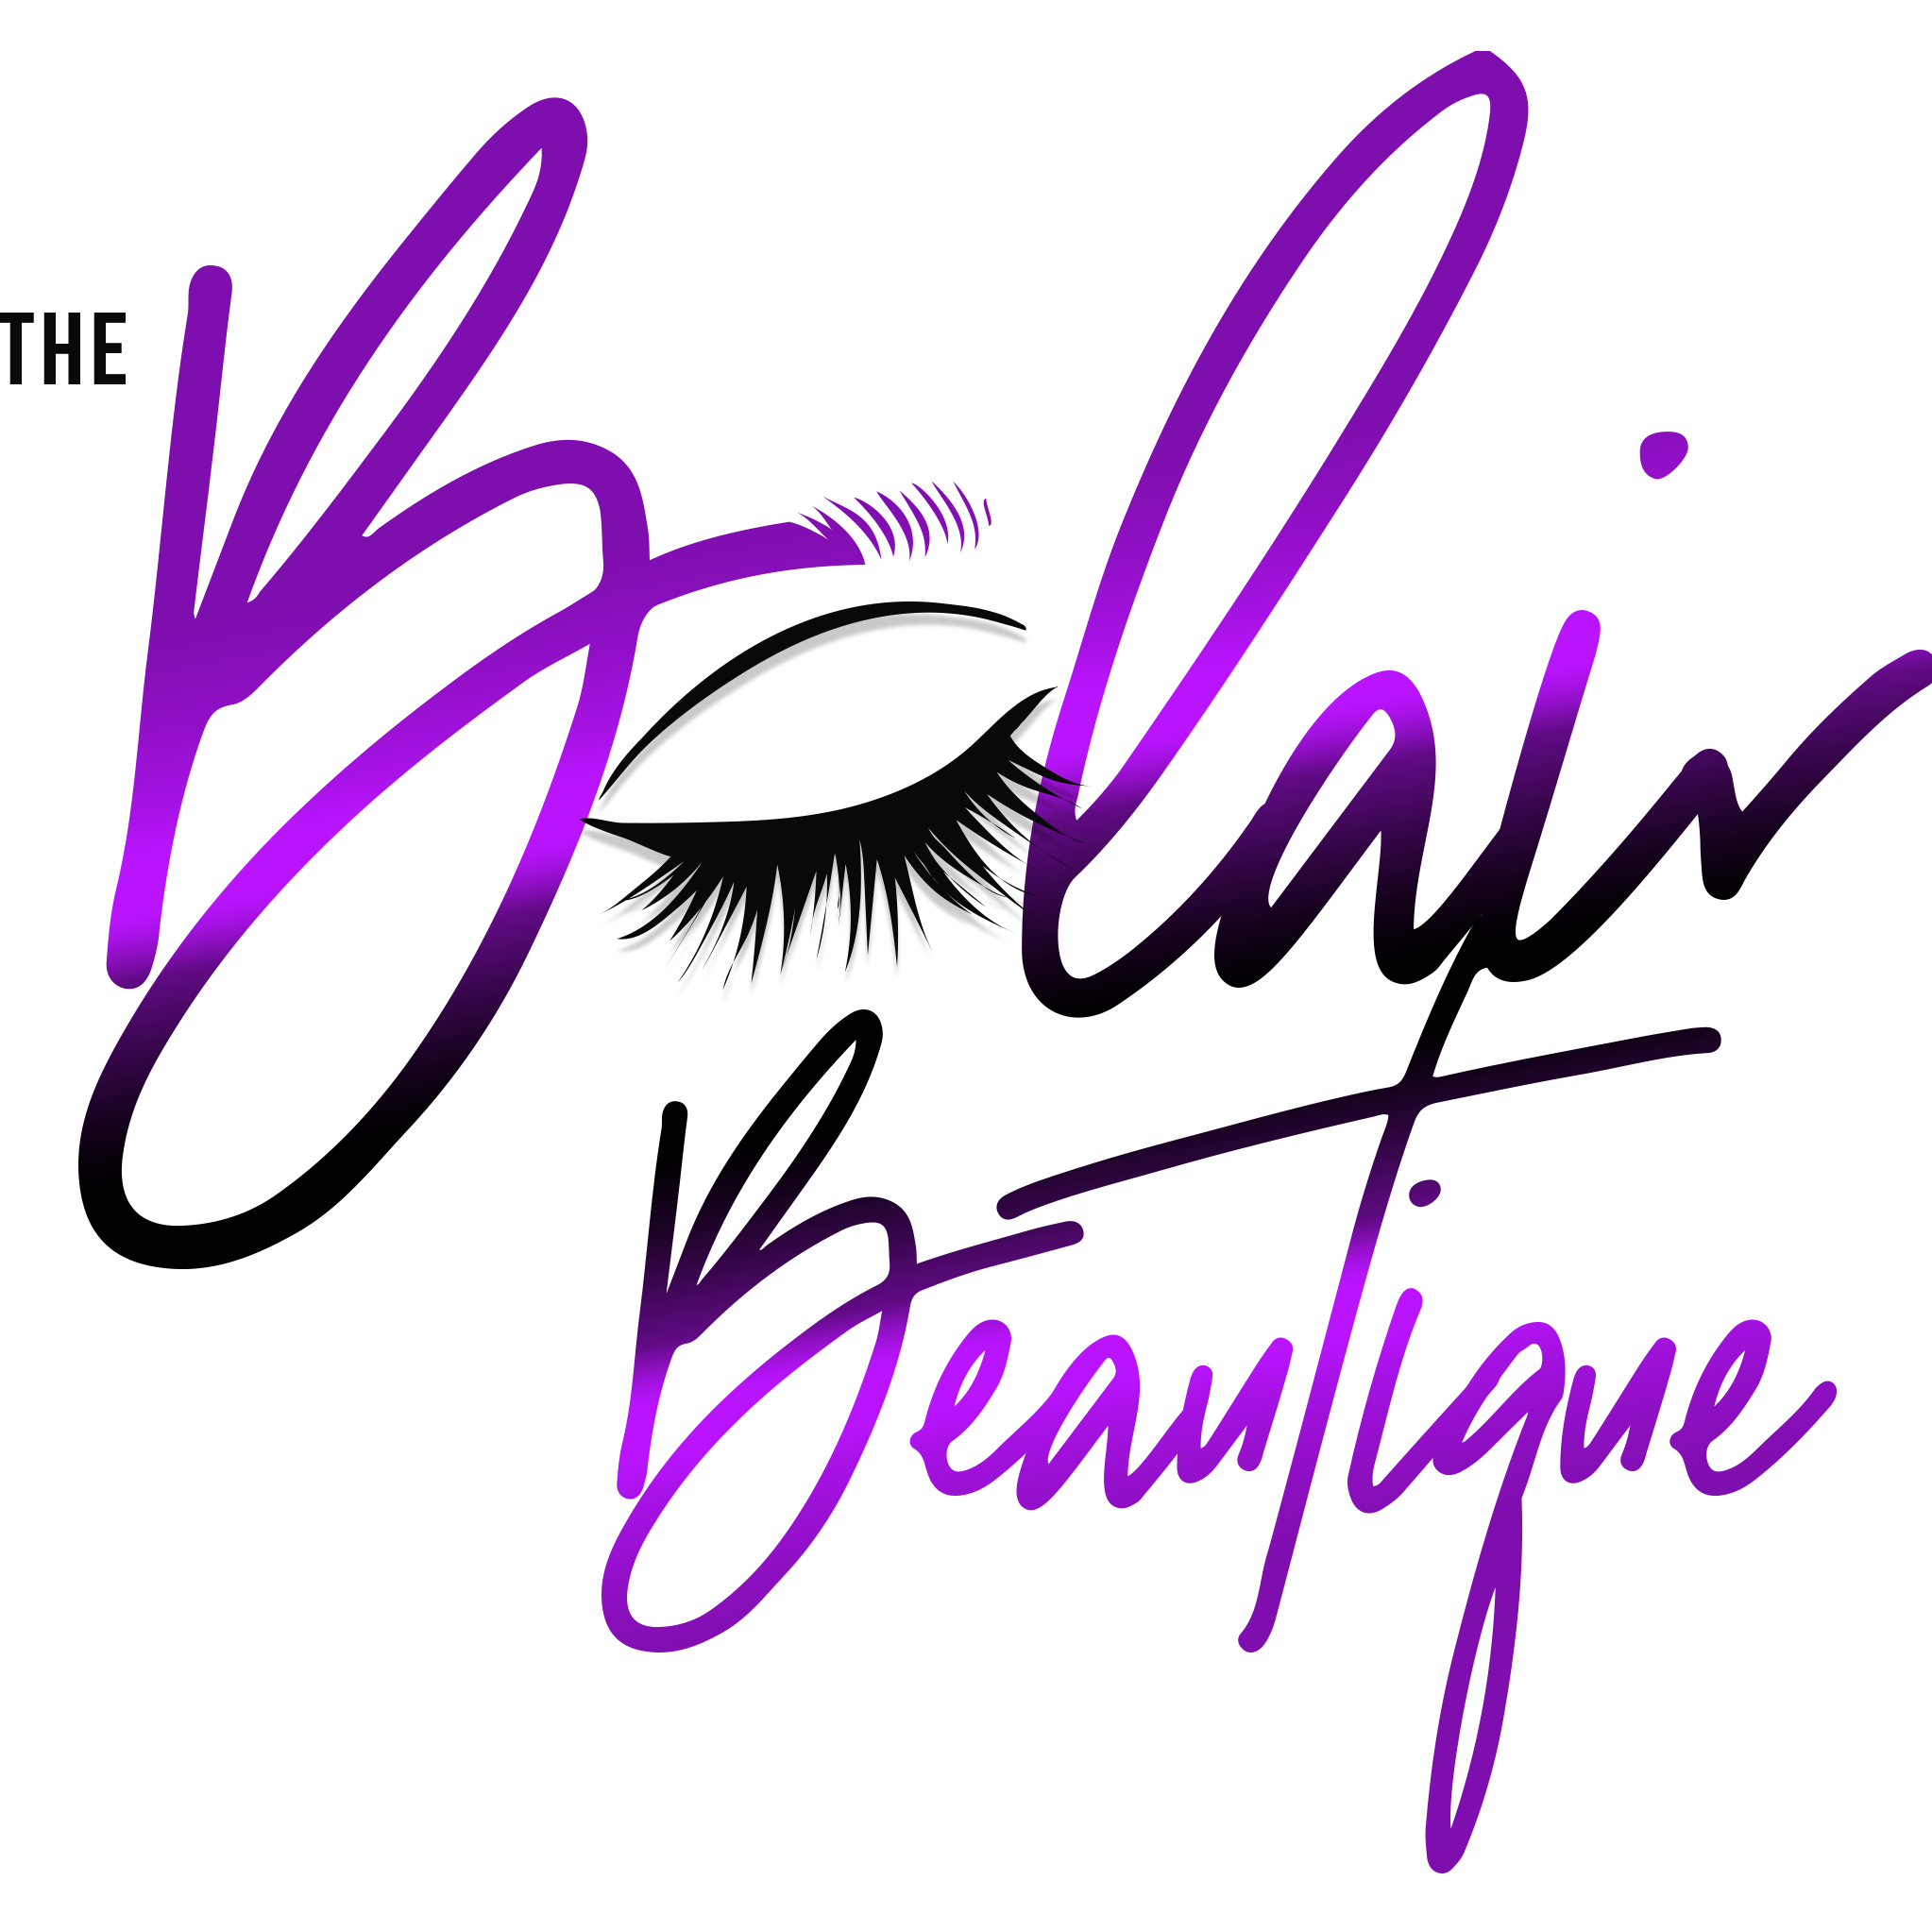 image of The Belair Beautique